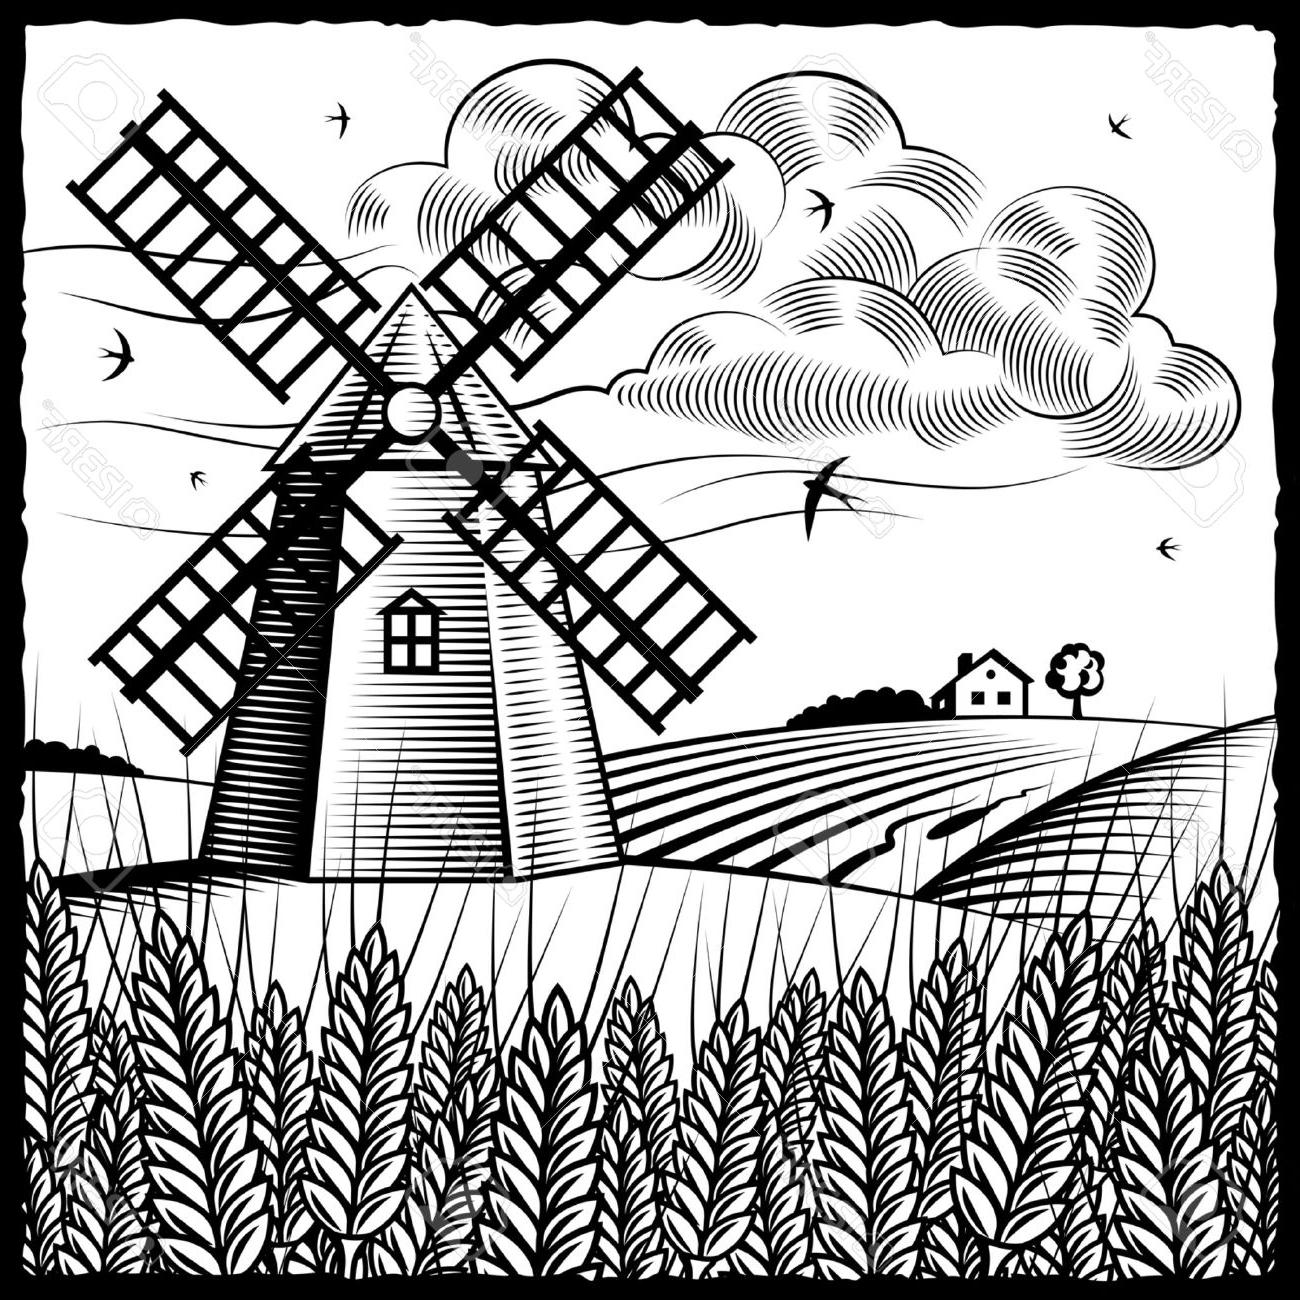 1300x1300 Top Landscape With Windmill Black And White Stock Vector Design